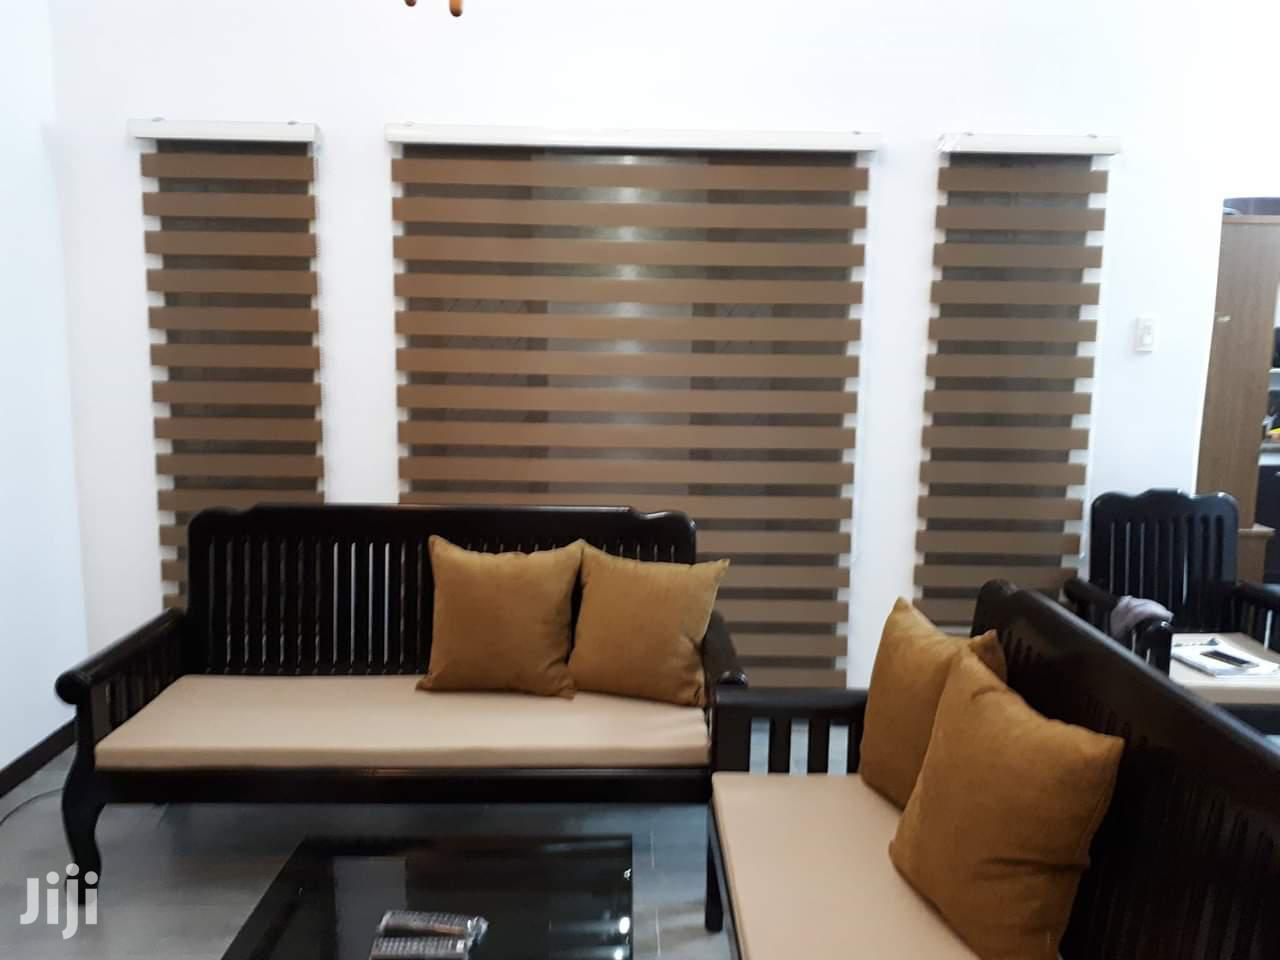 Modern Window Curtain Blinds for Homes and Offices   Home Accessories for sale in Cantonments, Greater Accra, Ghana